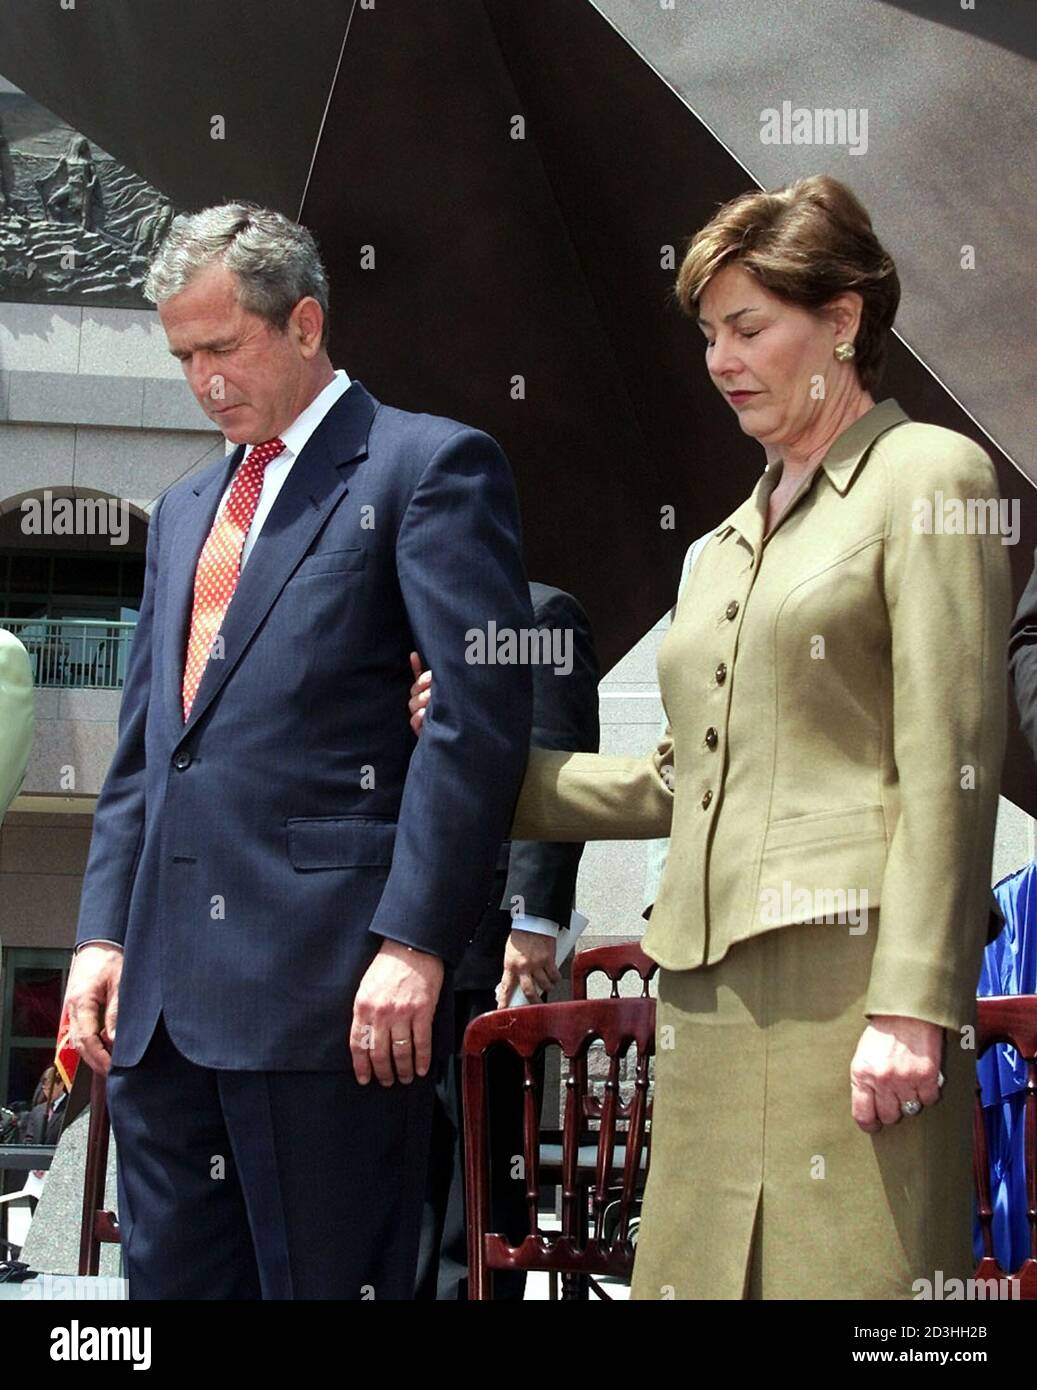 U.S. President George W. Bush and first lady Laura Bush bow their heads in prayer during the dedication of the Bob Bullock Texas History Museum while in Austin, Texas, April 27, 2001. The president is on a four-day swing through Louisiana, Arkansas and Texas promoting his administration's tax-relief package before returning to Washington this weekend.  LSD Stock Photo